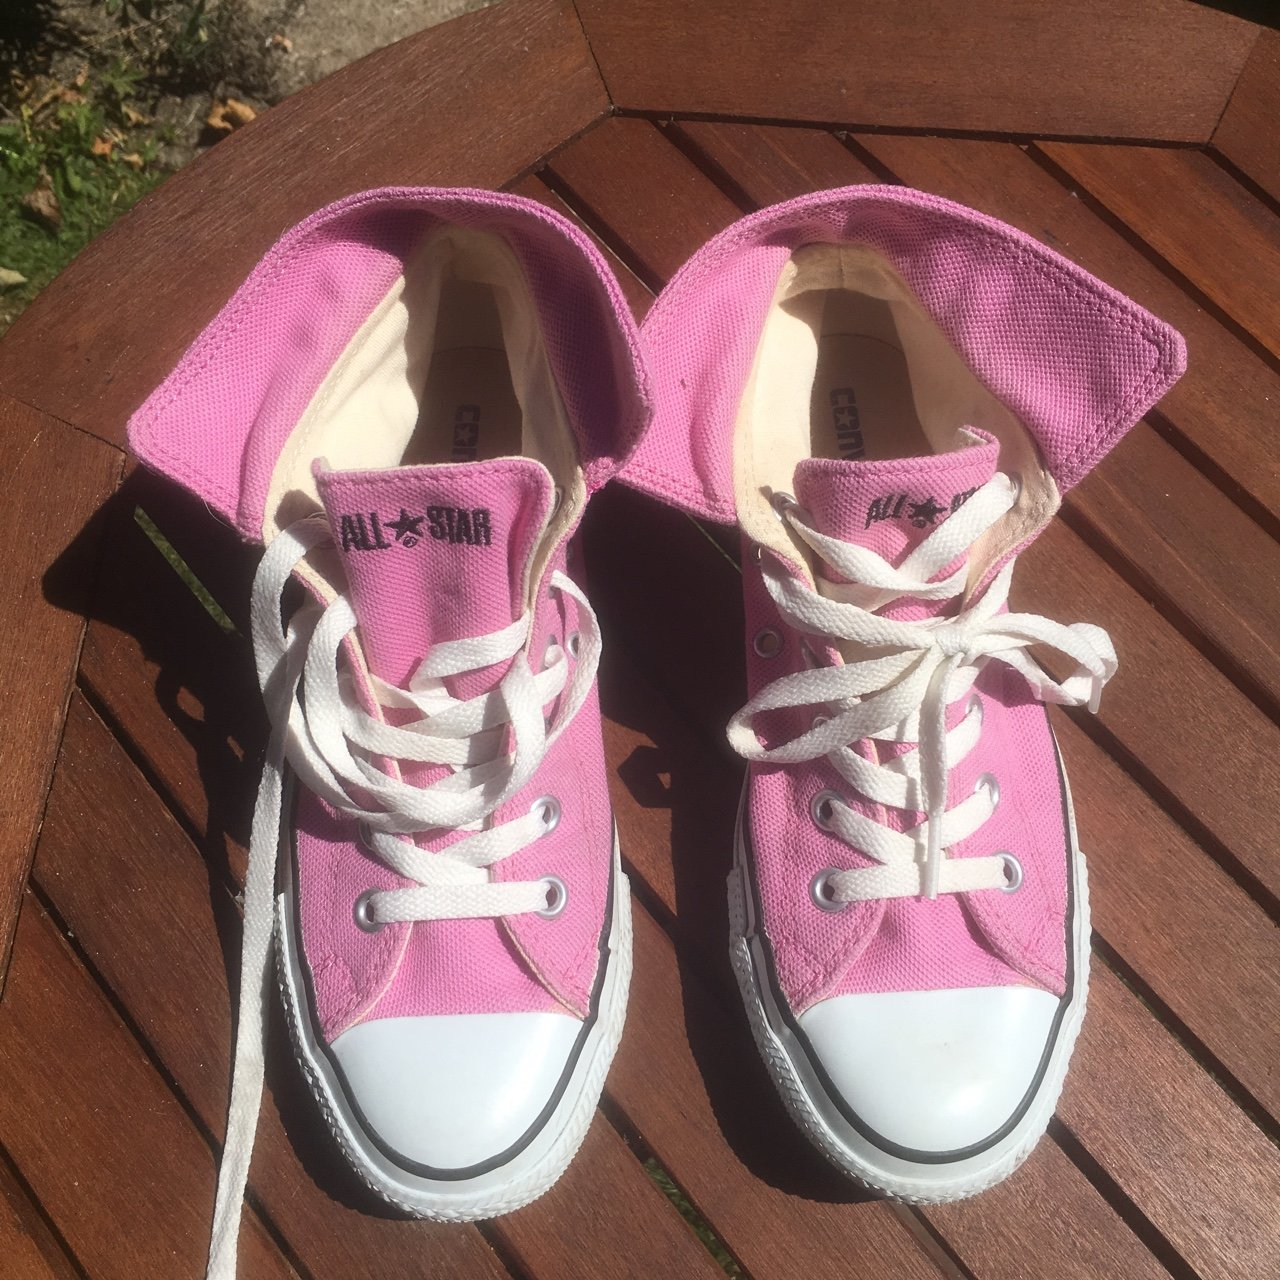 4c7b70ebec00 Baby pink converse all star trainers size 5